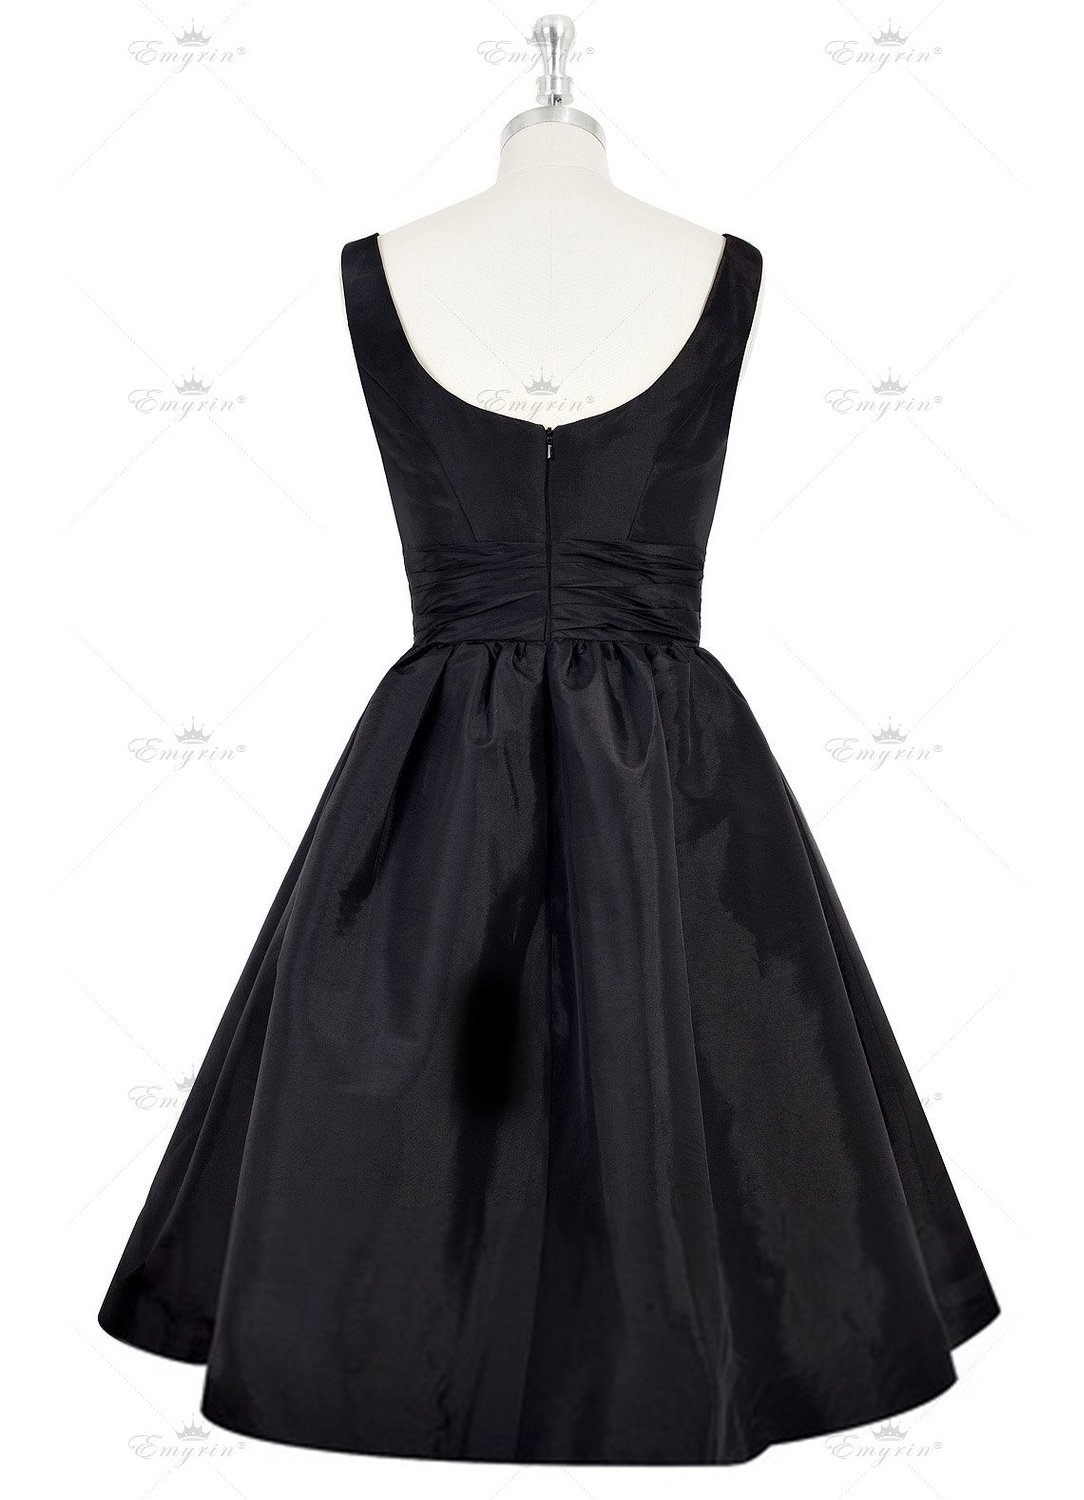 977416b91b Women s Knee length Satin Frock Scooped Back Swingy Black Dresses Ladies  prom party Dress-in Dresses from Women s Clothing on Aliexpress.com